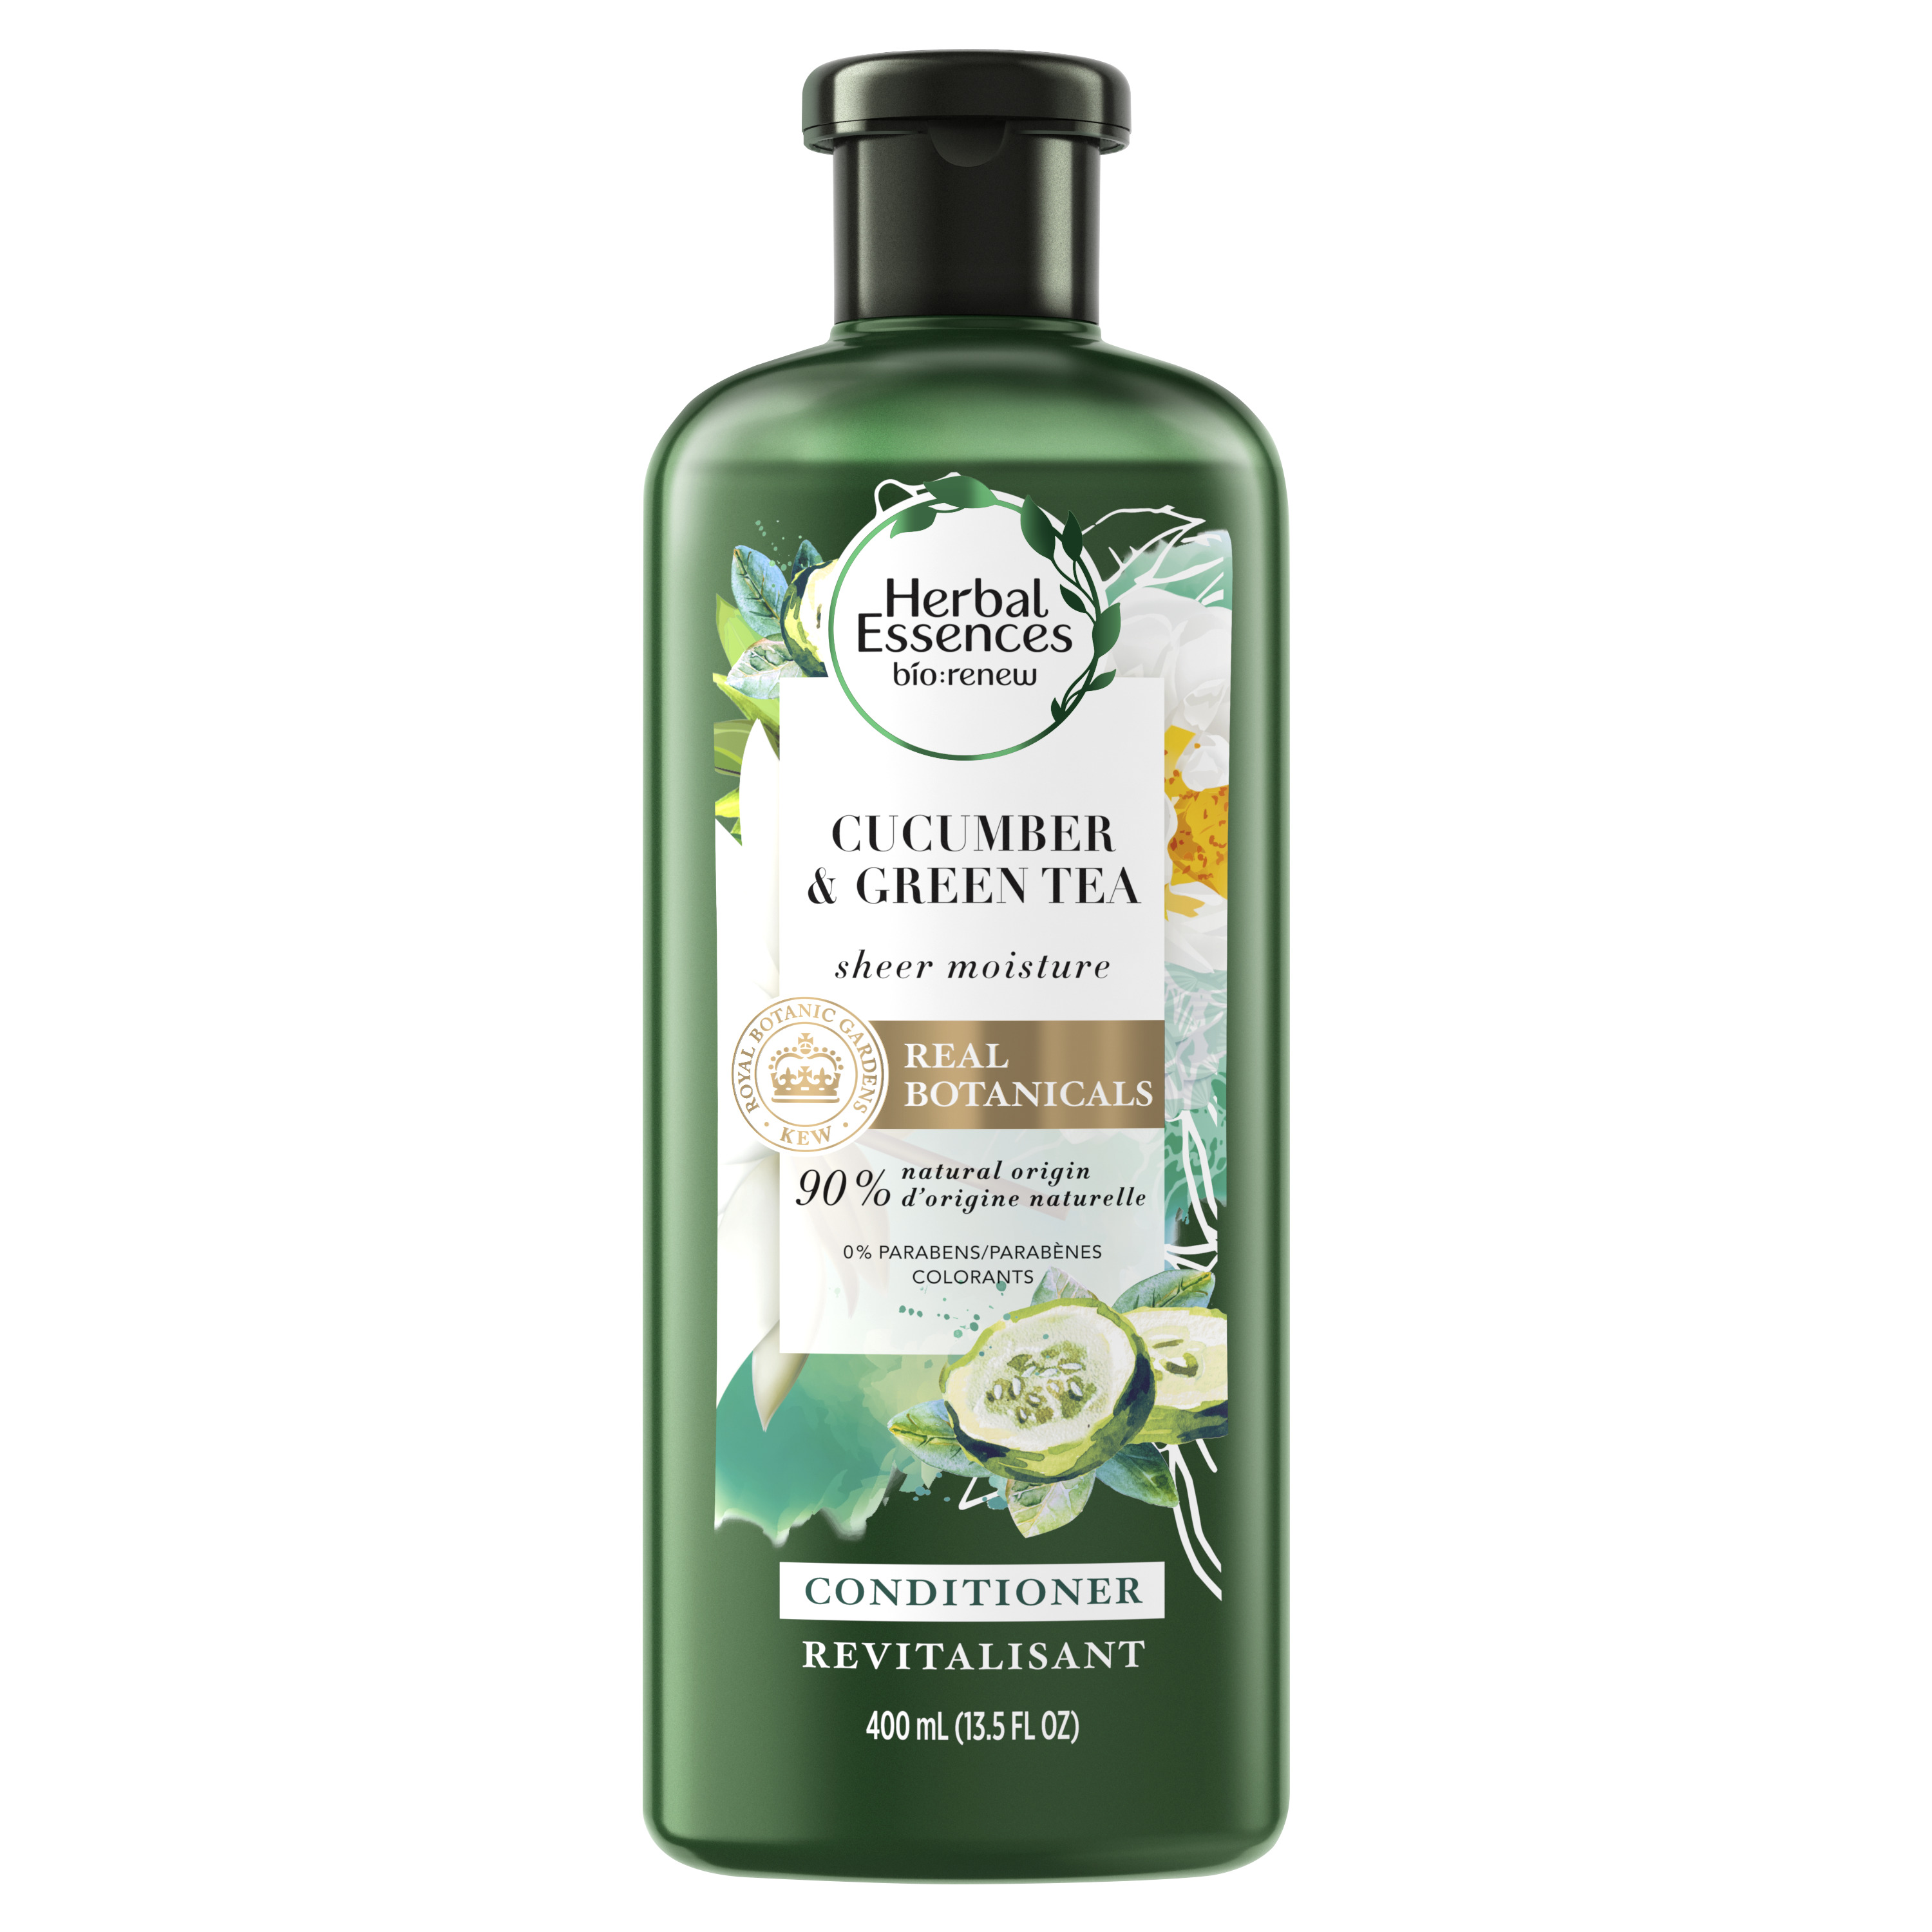 Herbal Essences bio:renew Cucumber & Green Tea Sheer Moisture Conditioner, 13.5 fl oz